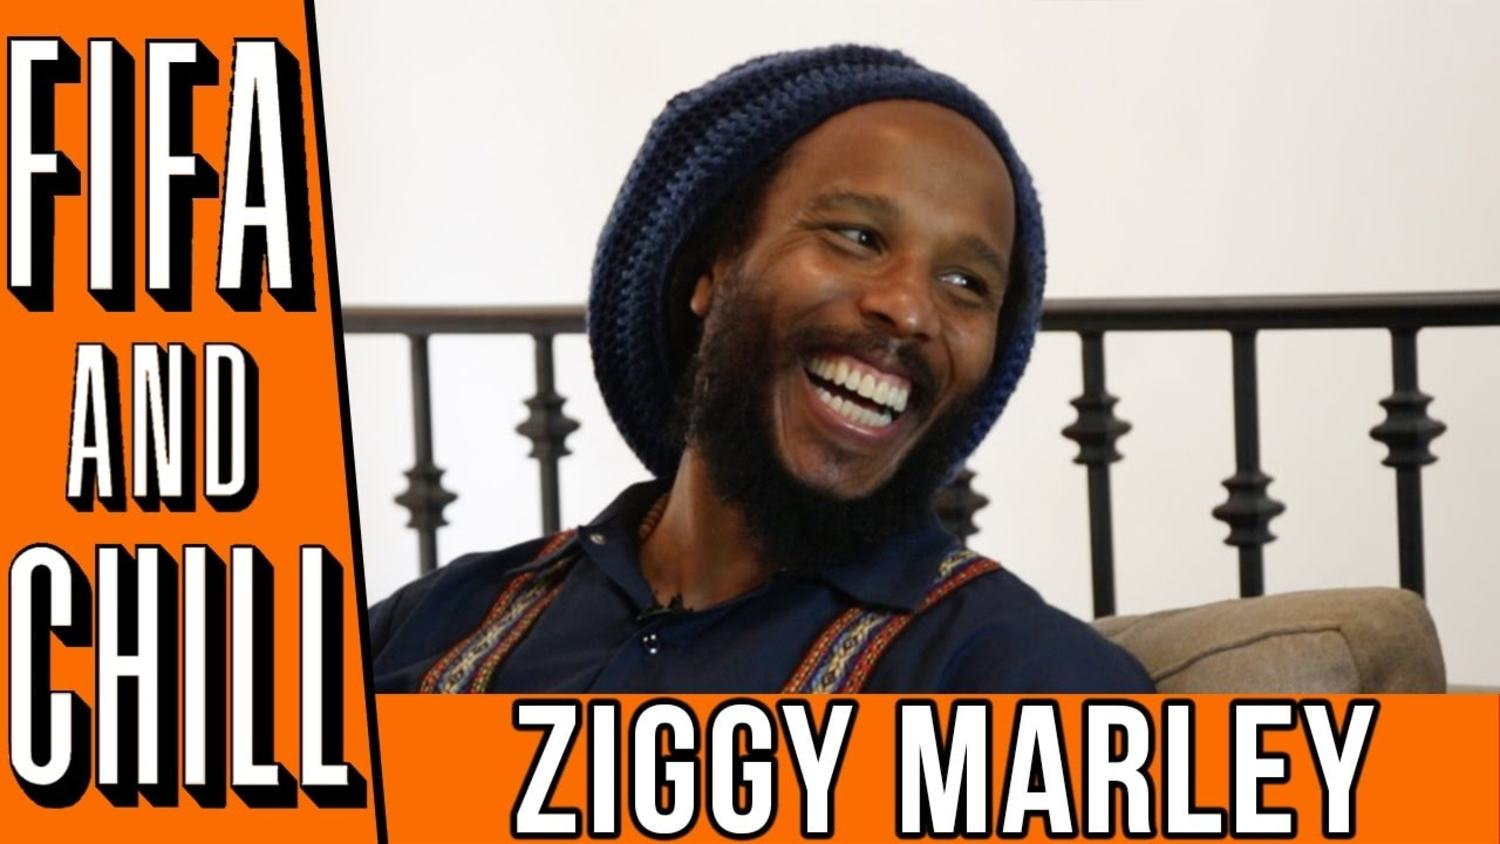 FIFA and Chill With Ziggy Marley | Poet & Vuj Present!